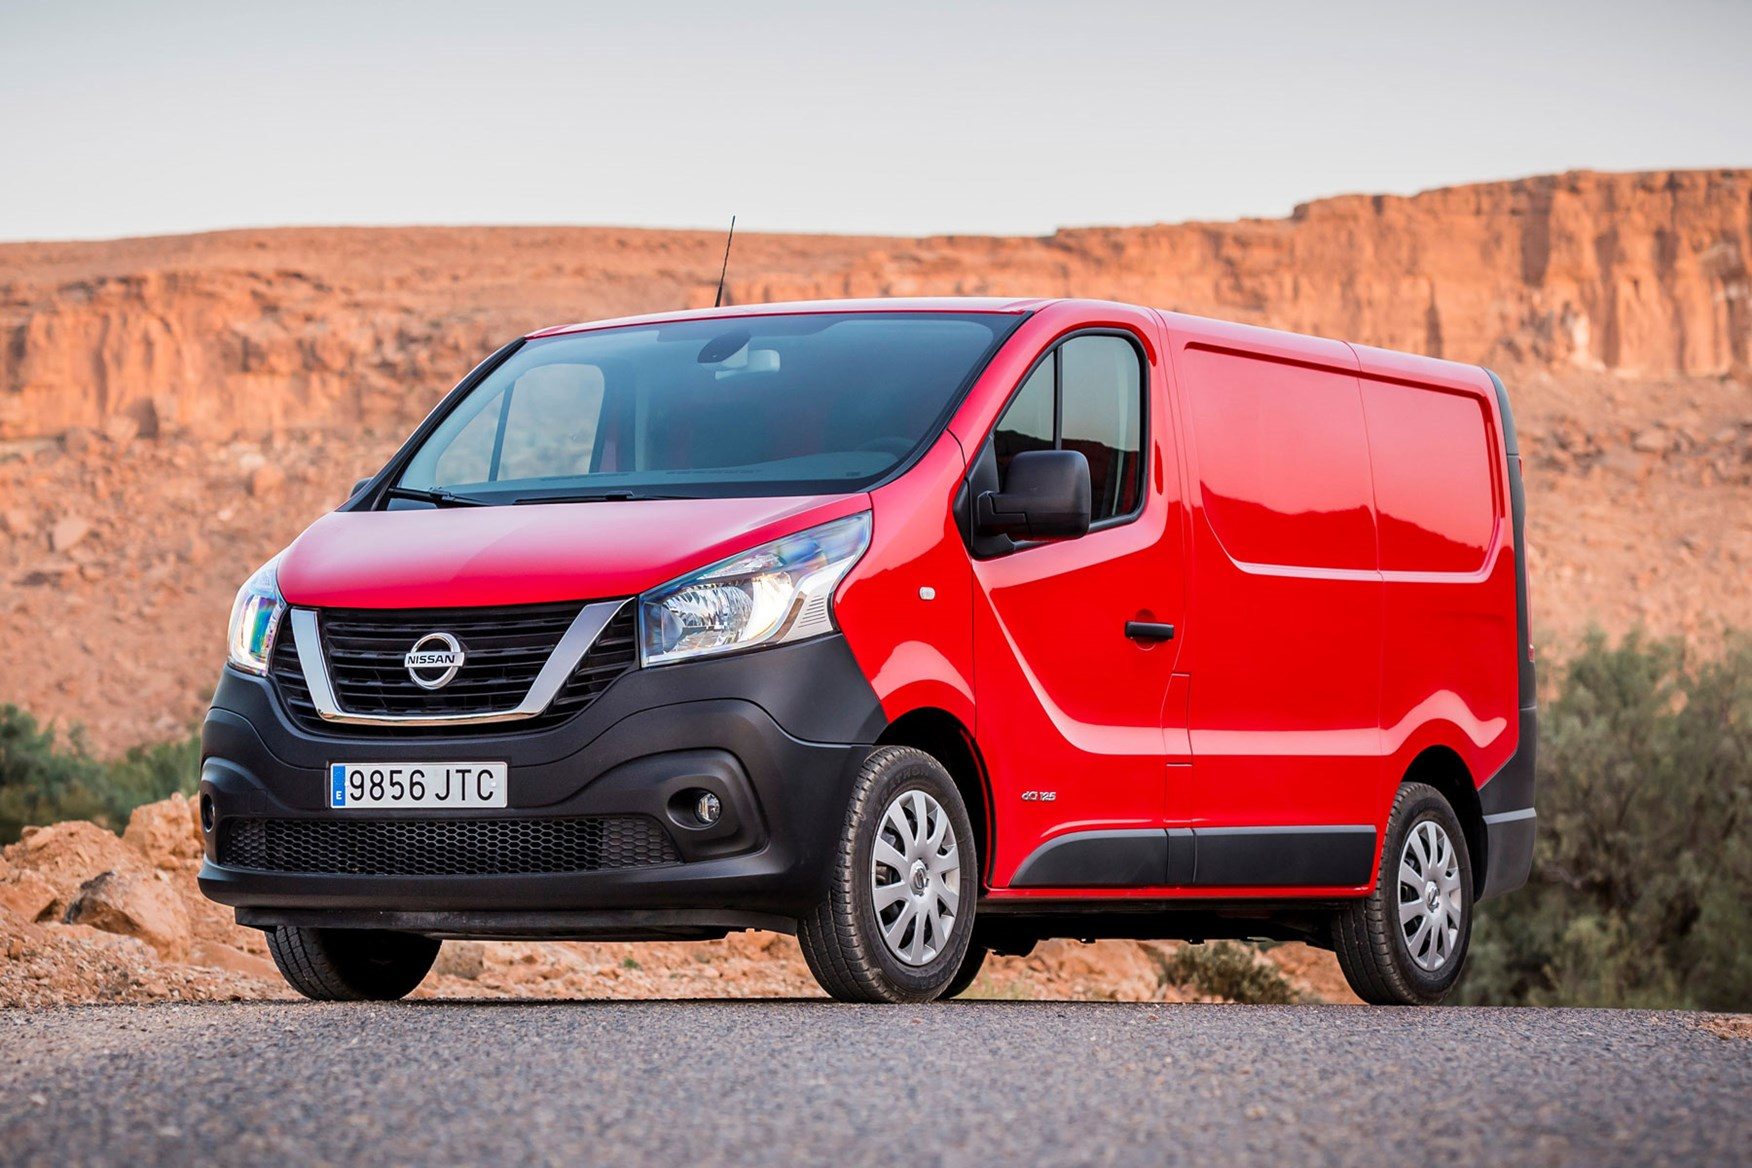 Nissan NV300 - red, front view, Morocco, 2016